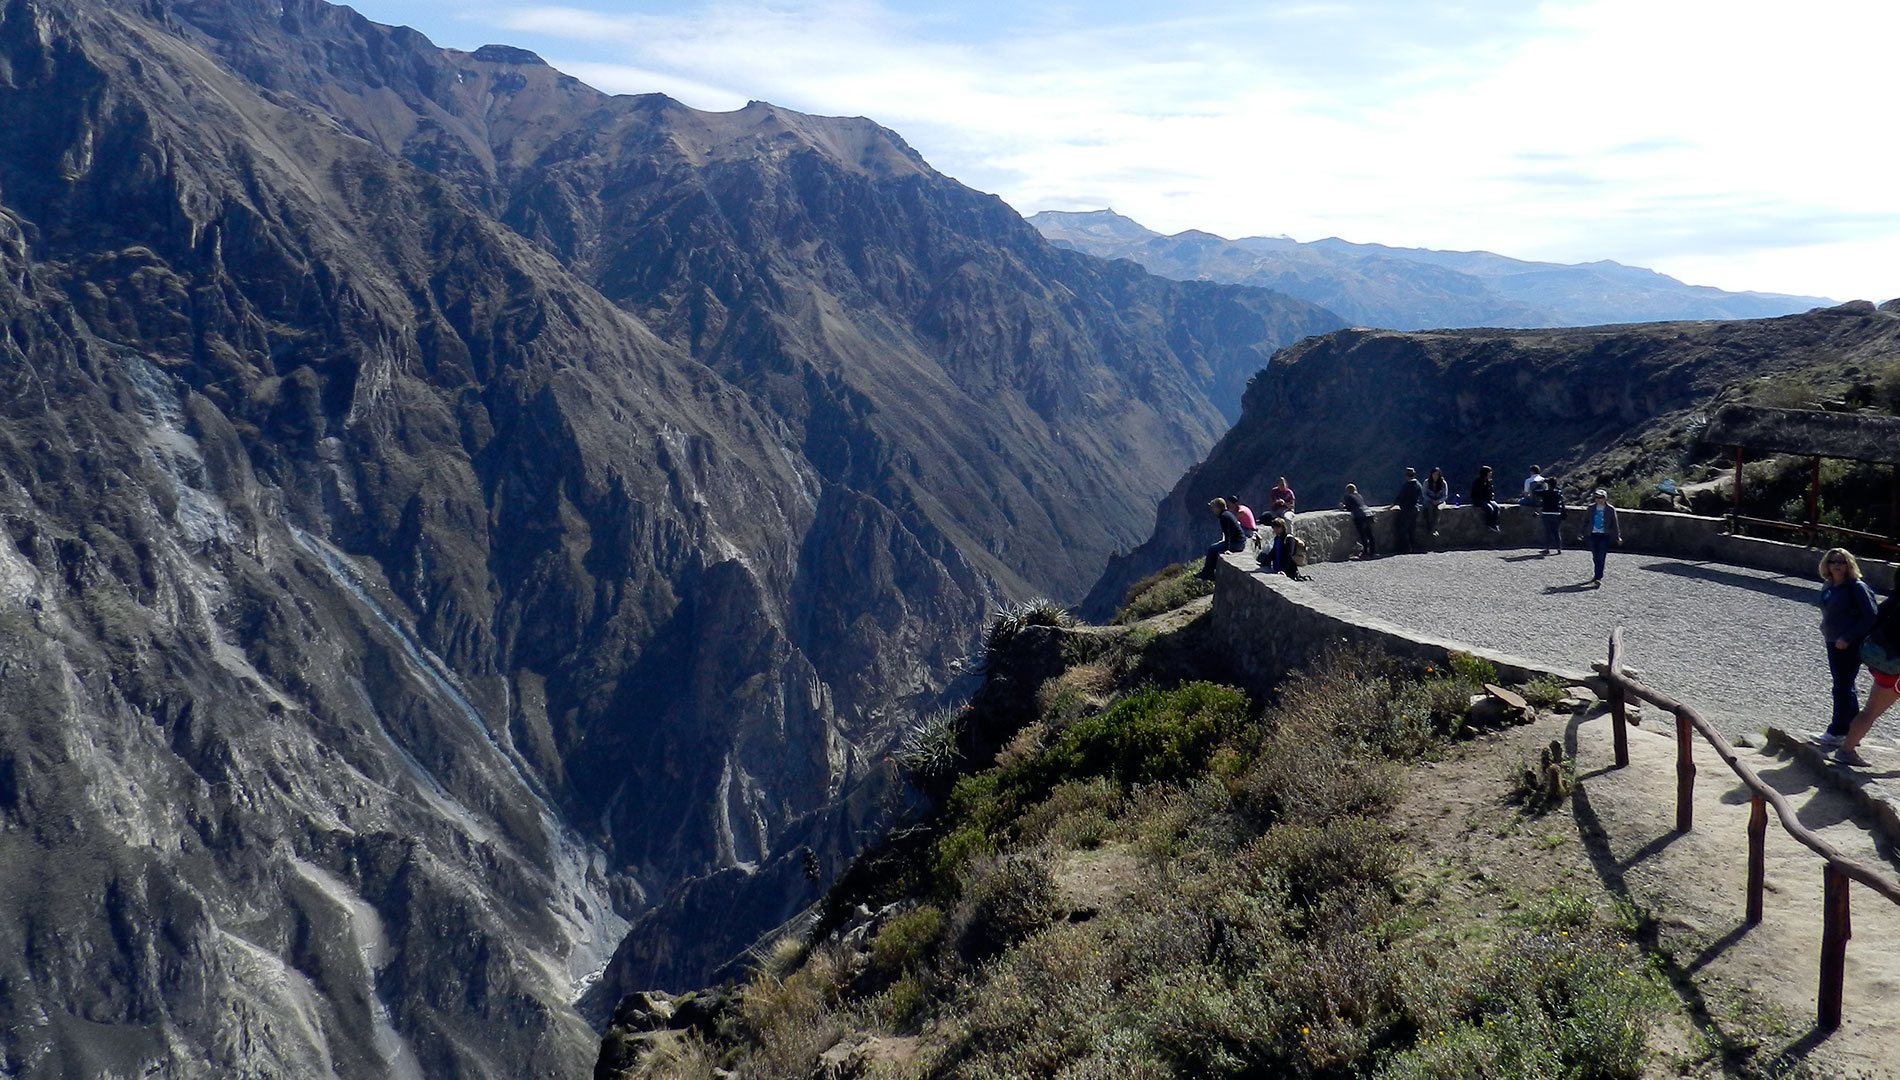 7. Magical Andes